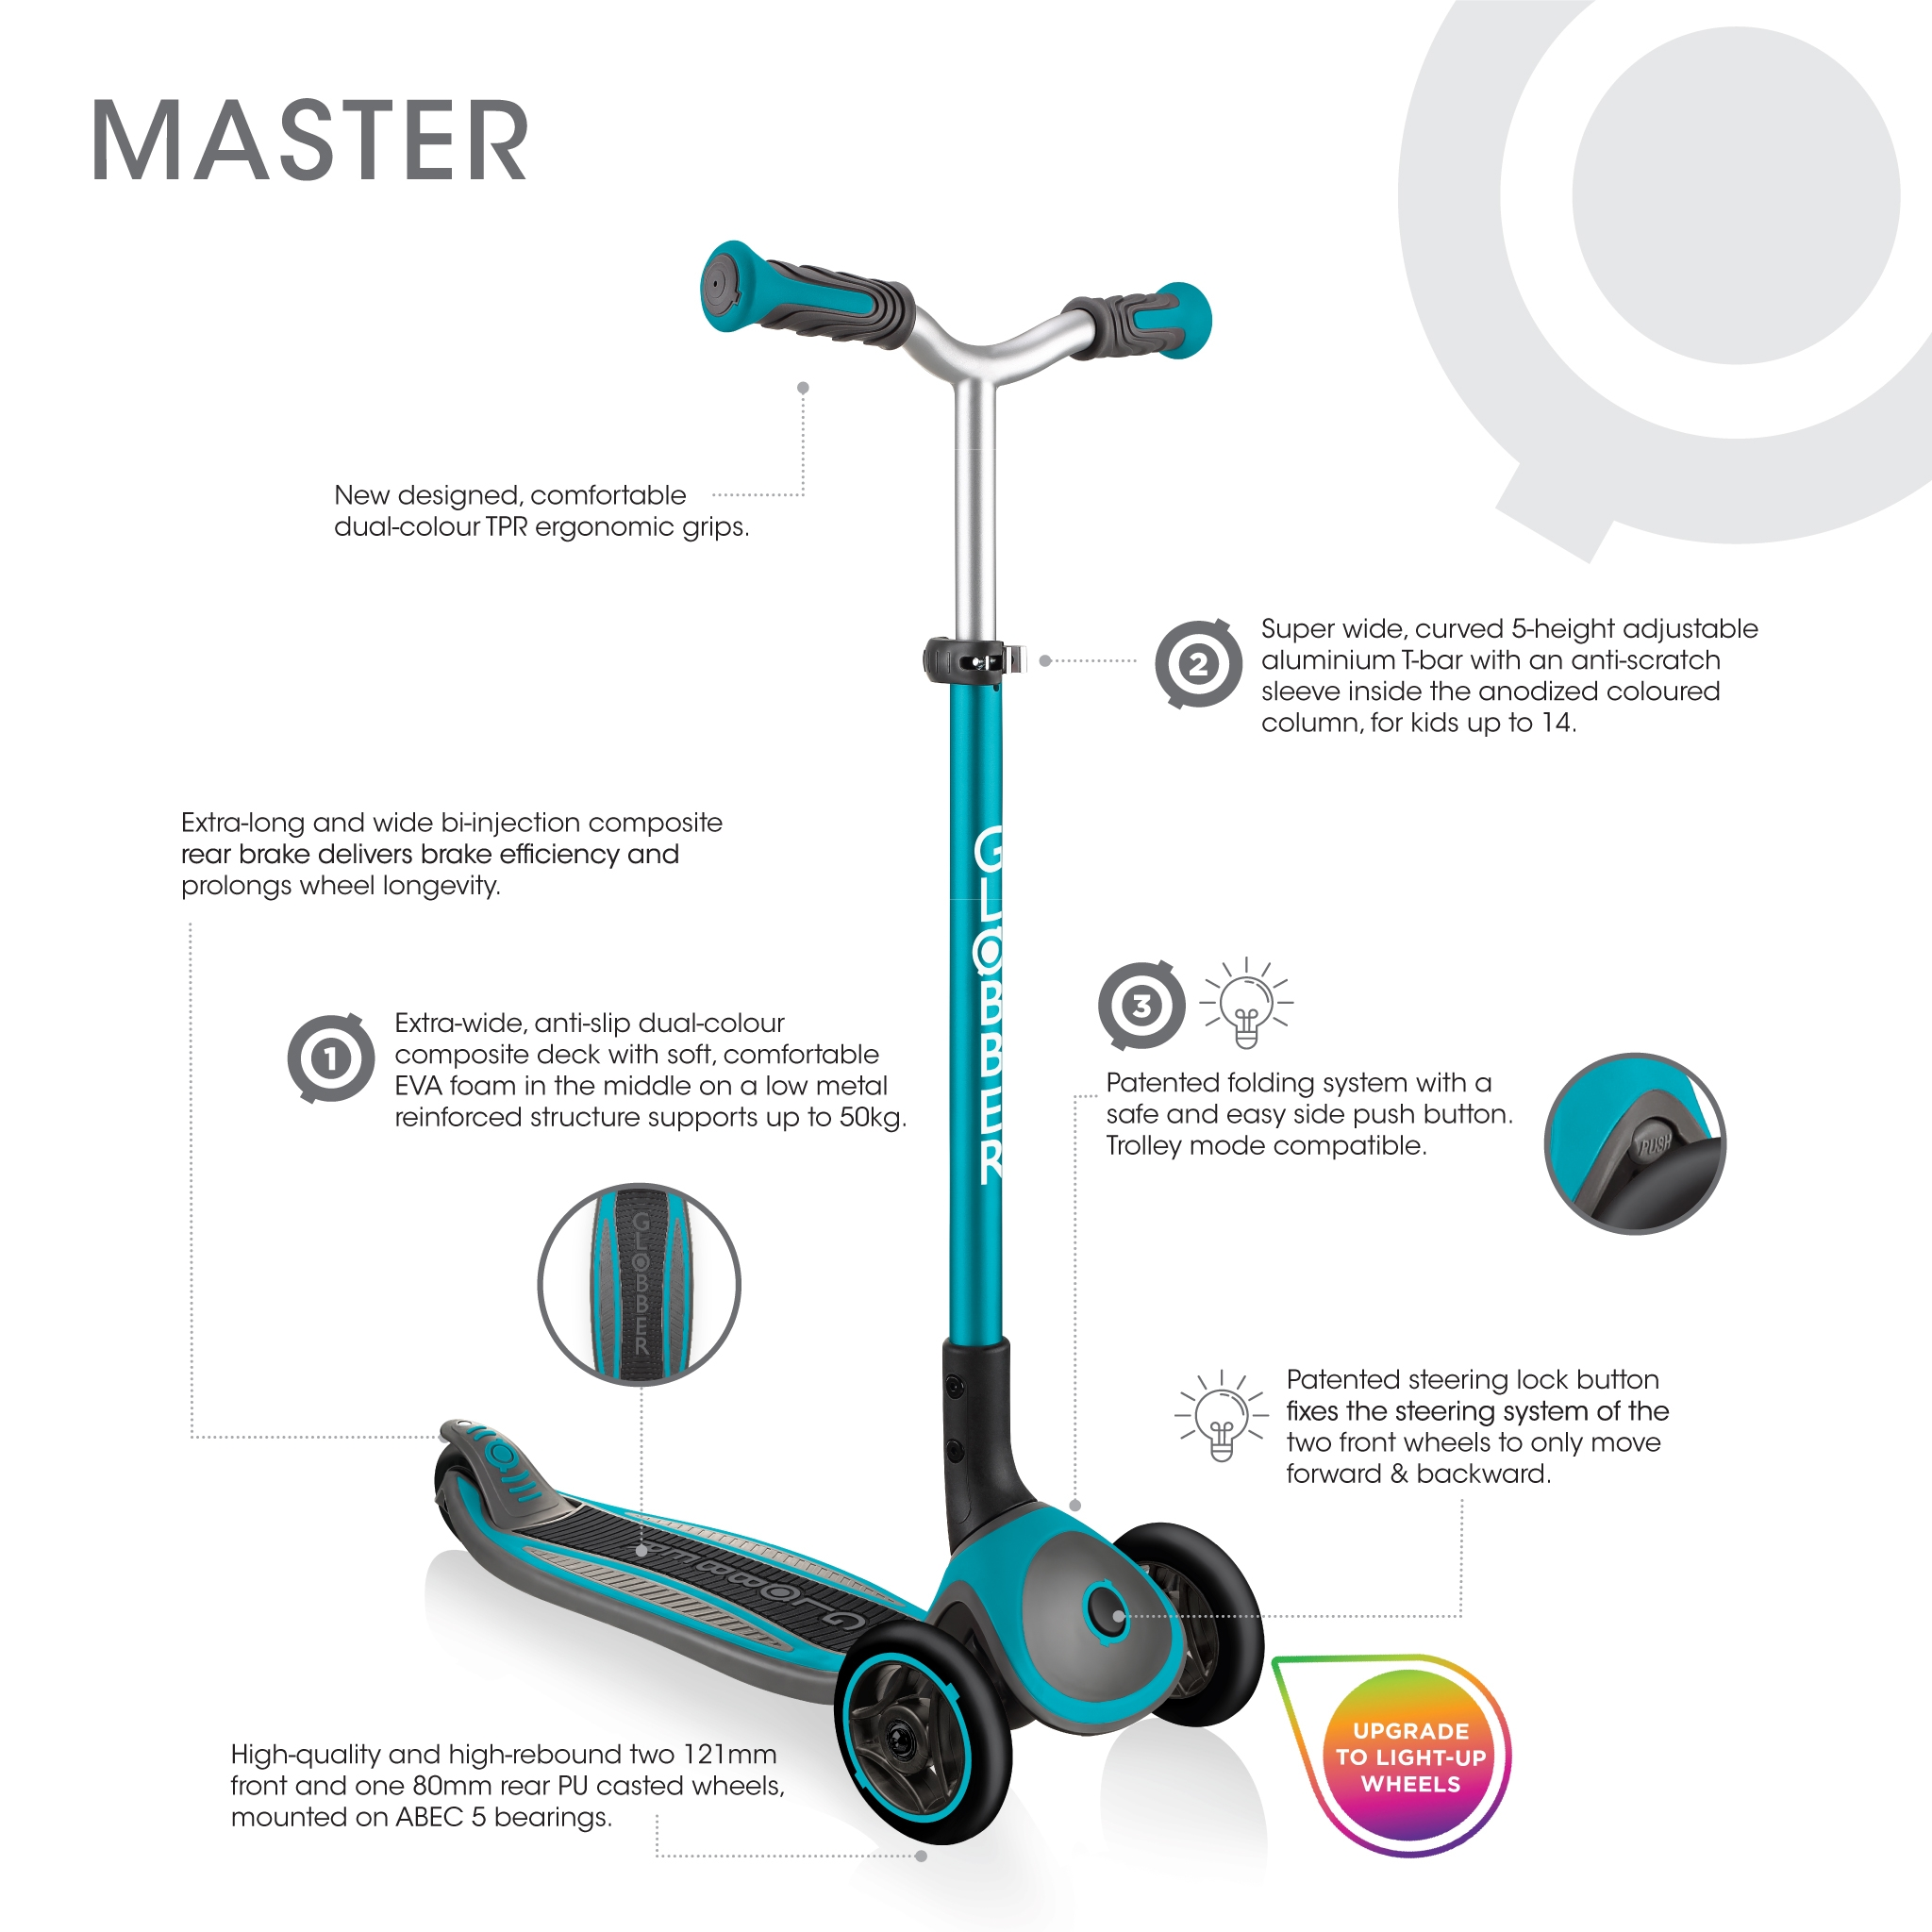 Globber-MASTER-premium-3-wheel-scooter-for-kids-aged-4-to-14